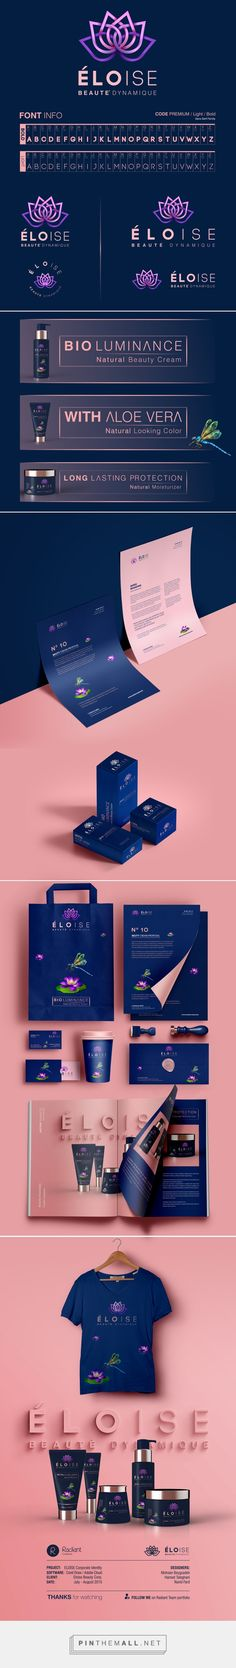 ELOISE Corporate Identity on Behance | Fivestar Branding – Design and Branding Agency & Inspiration Gallery